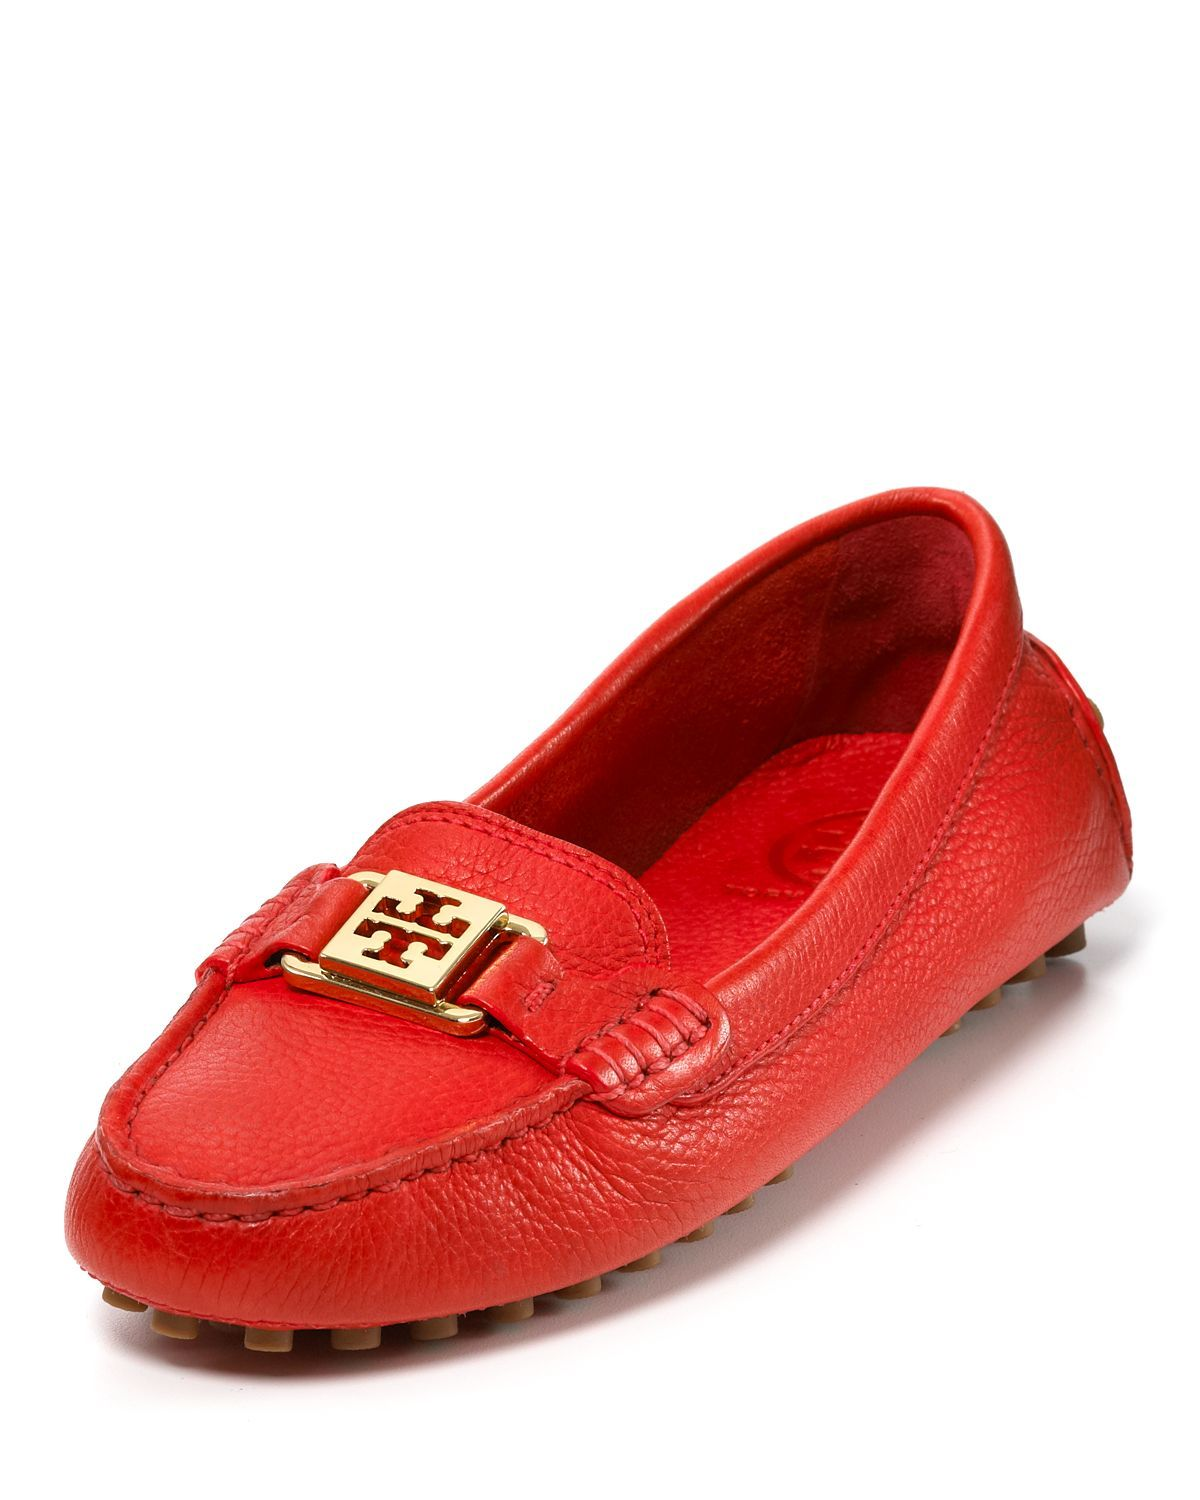 Tory Burch Loafers in Red Volcano